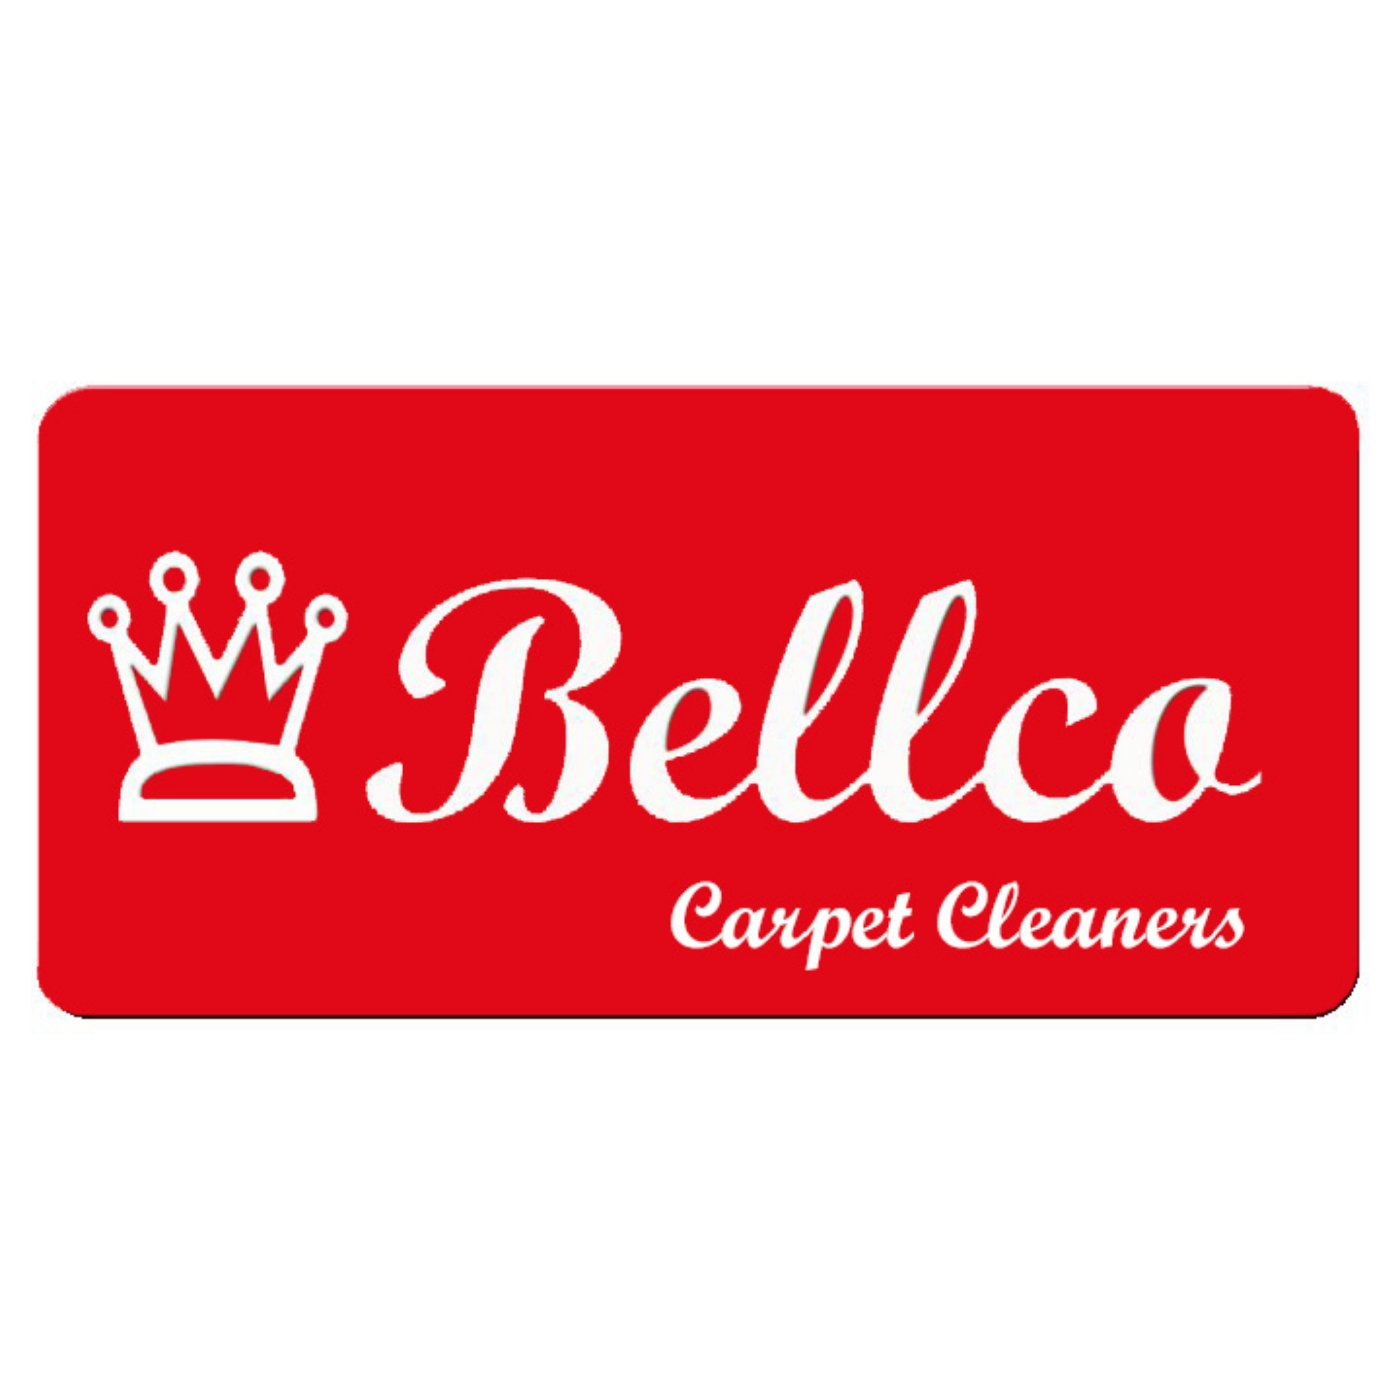 Carpet Cleaning Service in TX Cypress 77429 Bellco Carpet Cleaners 11111 Saathoff Drive Apt 1107 (713)729-8400